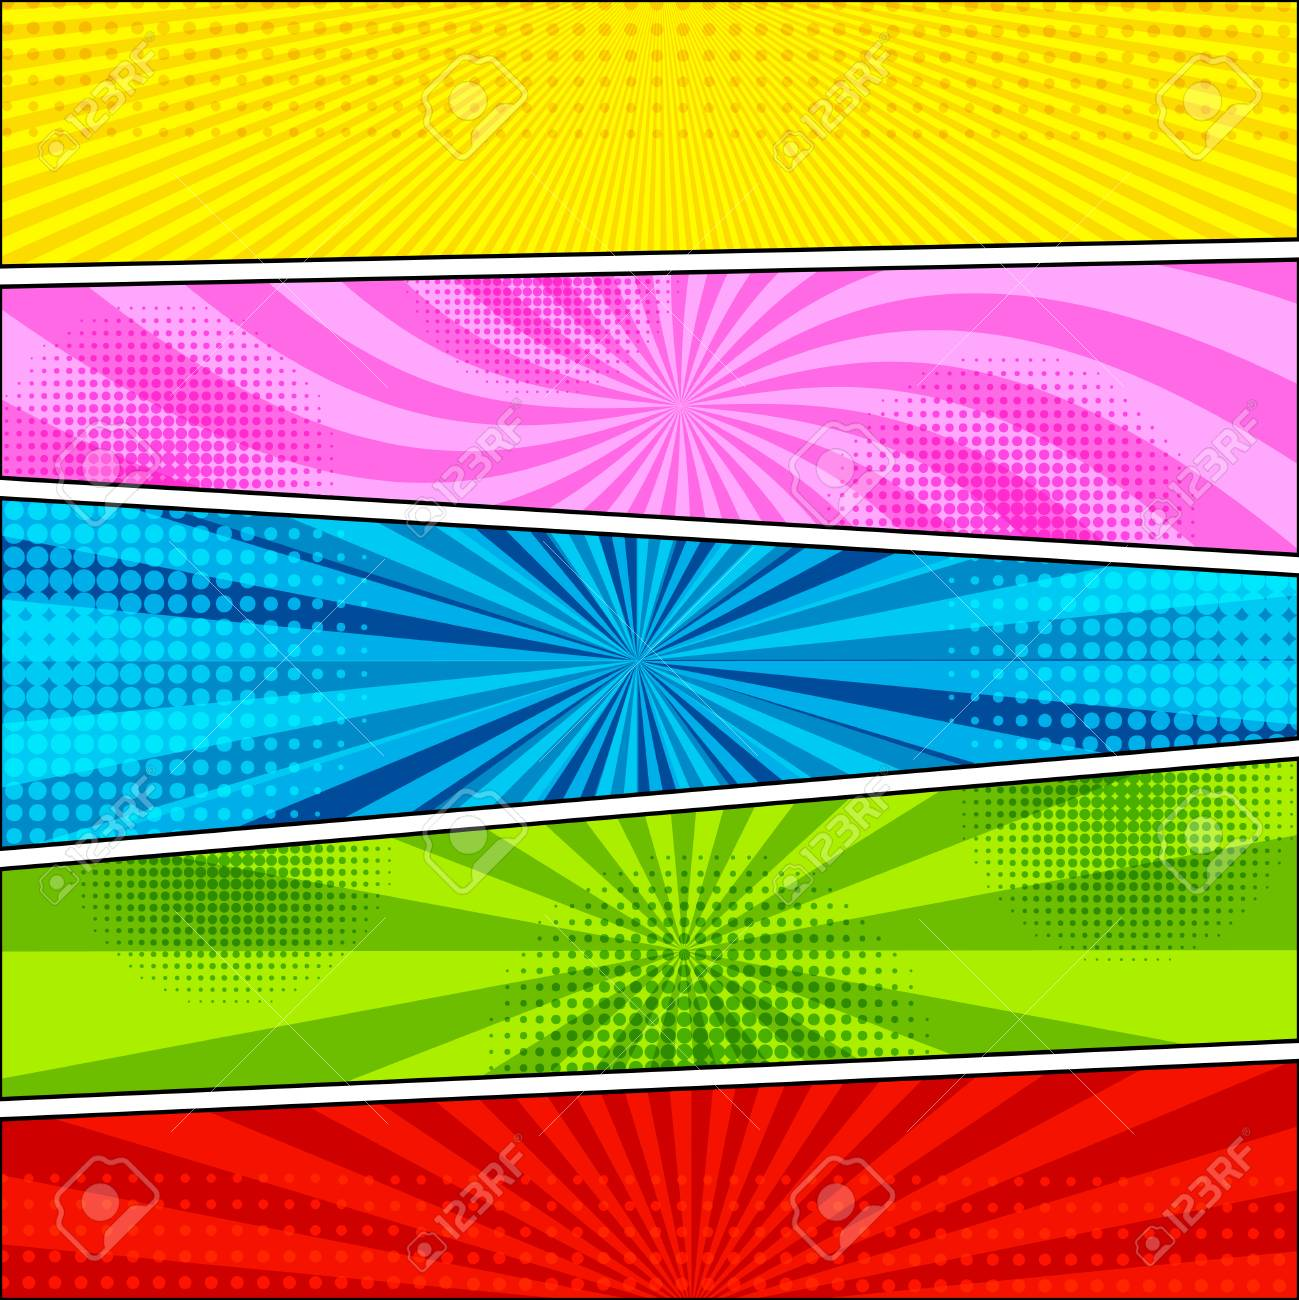 Comic Book Background With Halftone And Radial Effects In Yellow ...